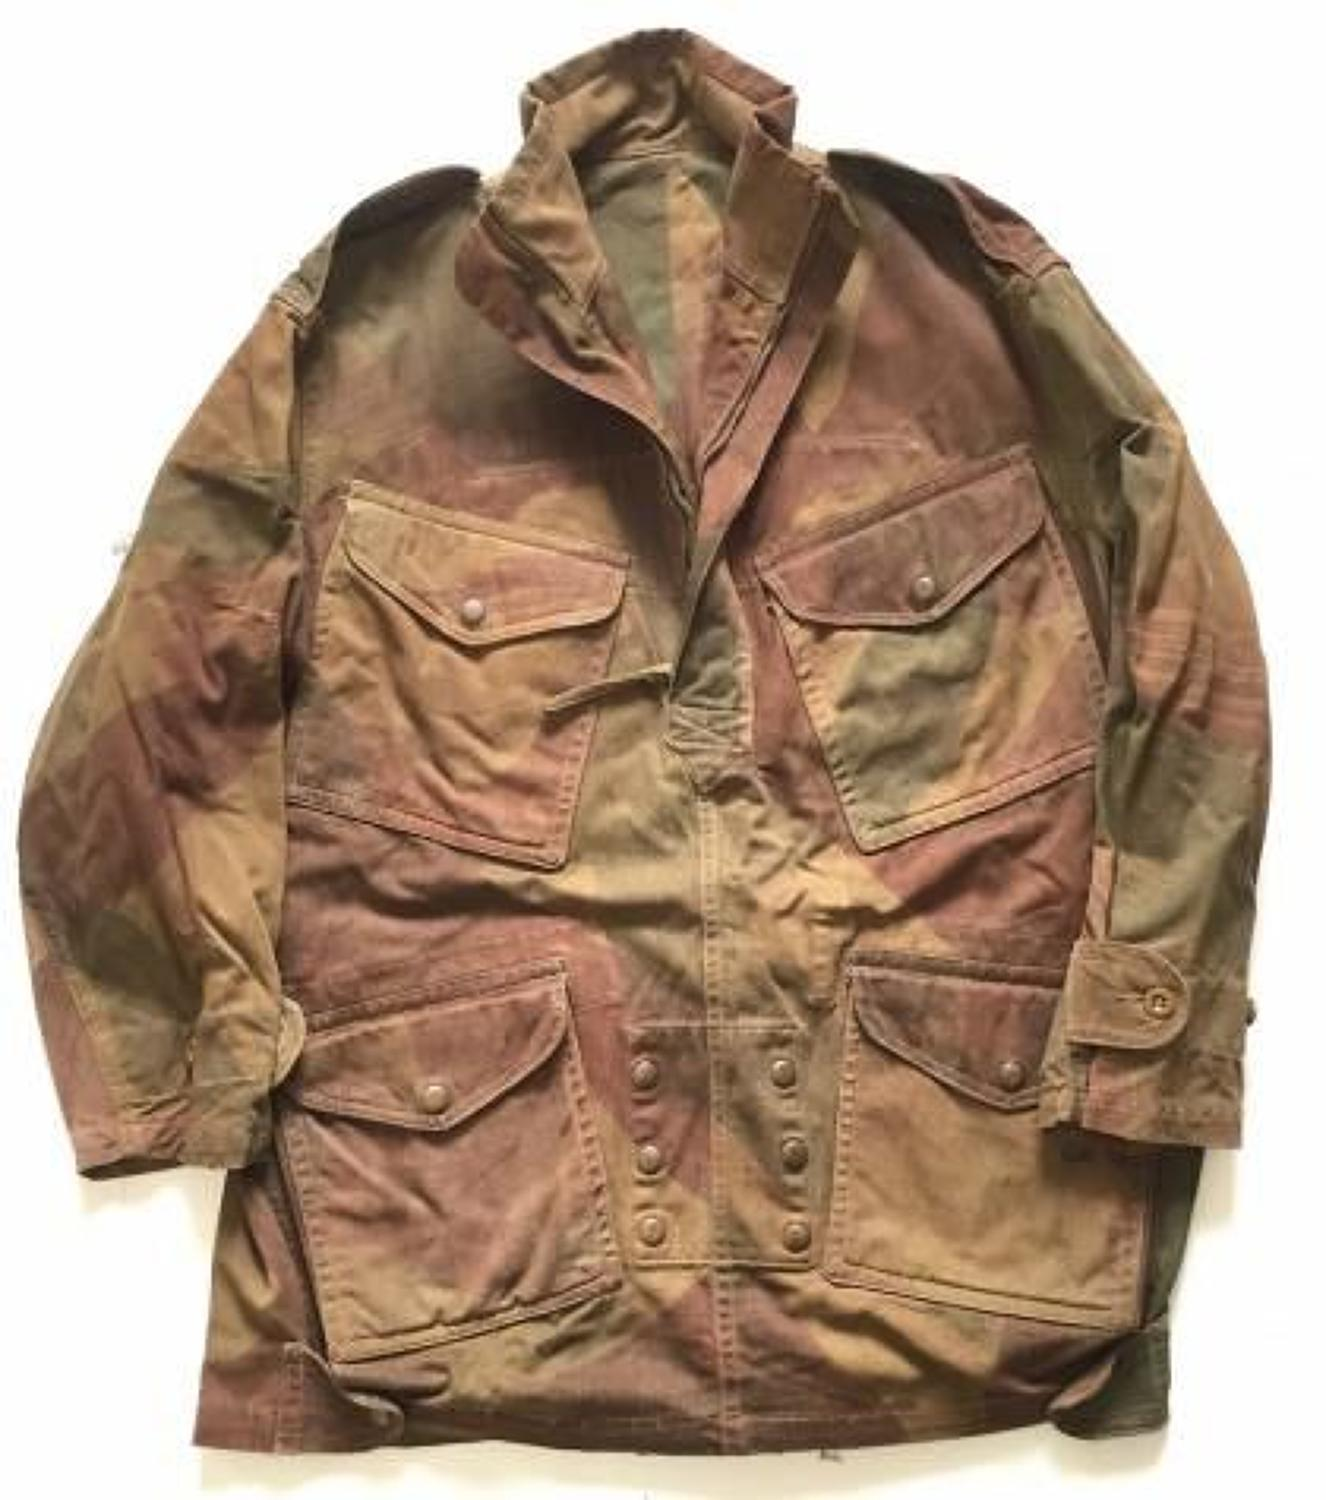 WW2 1944 Attributed Airborne Forces Denison Smock.